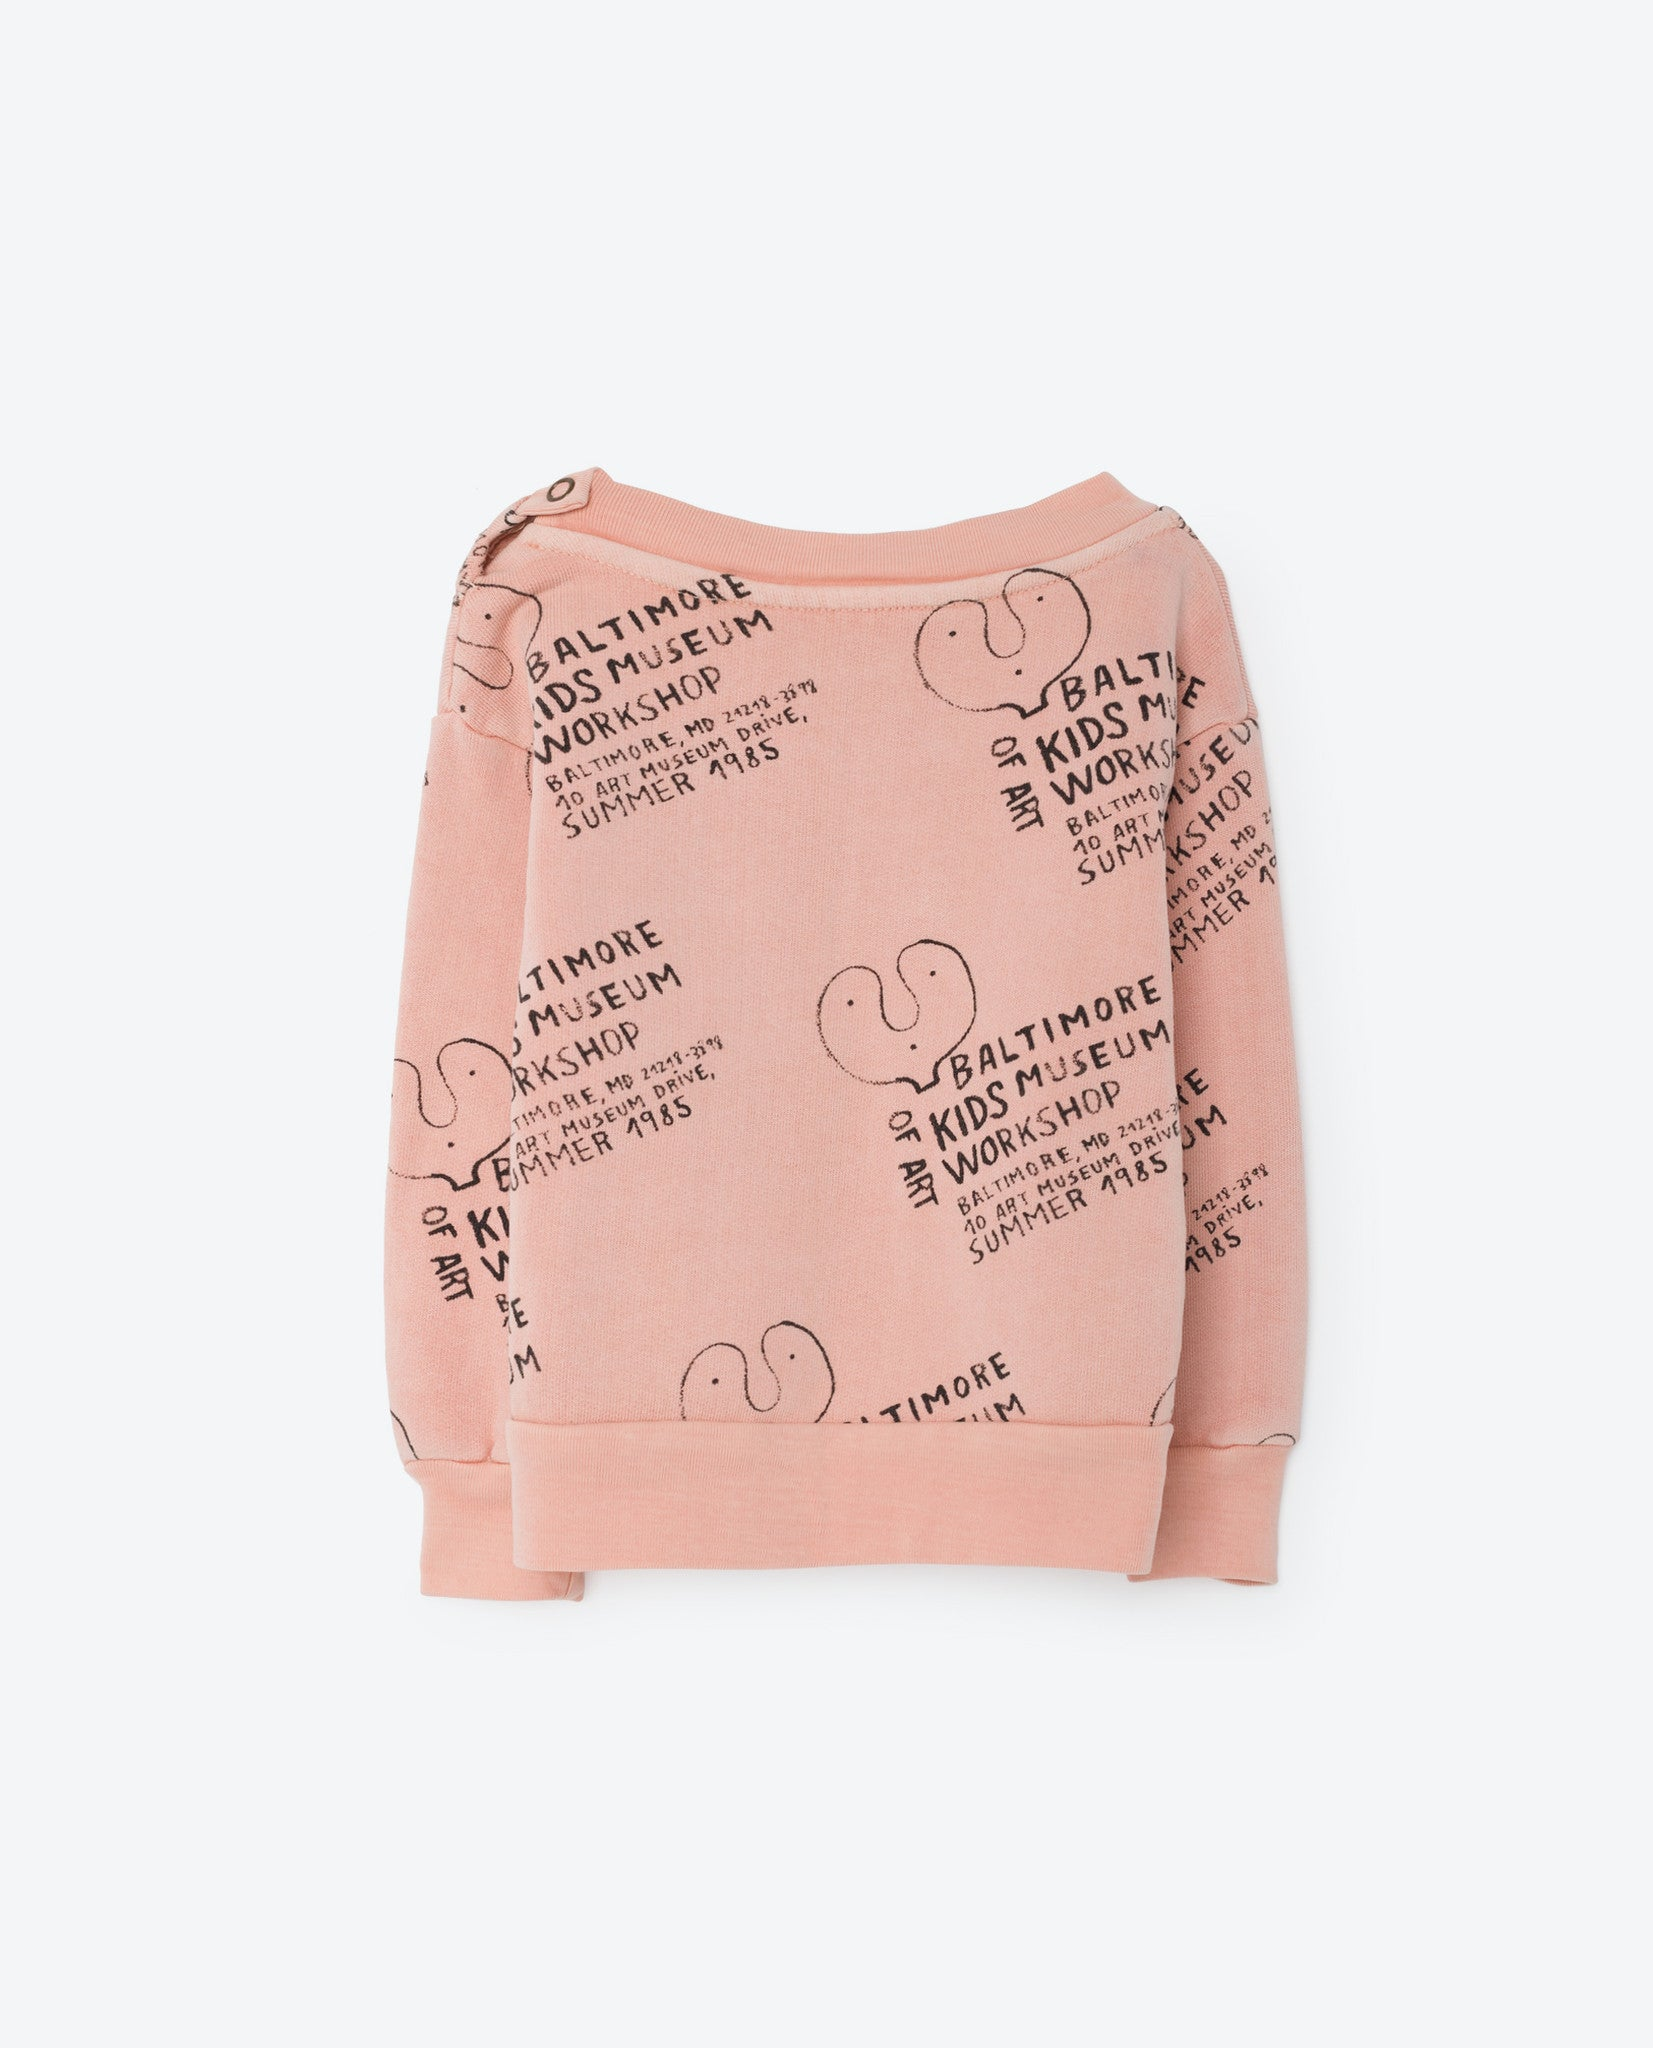 The Animals Observatory Pink Kids Museum Babies Sweatshirt